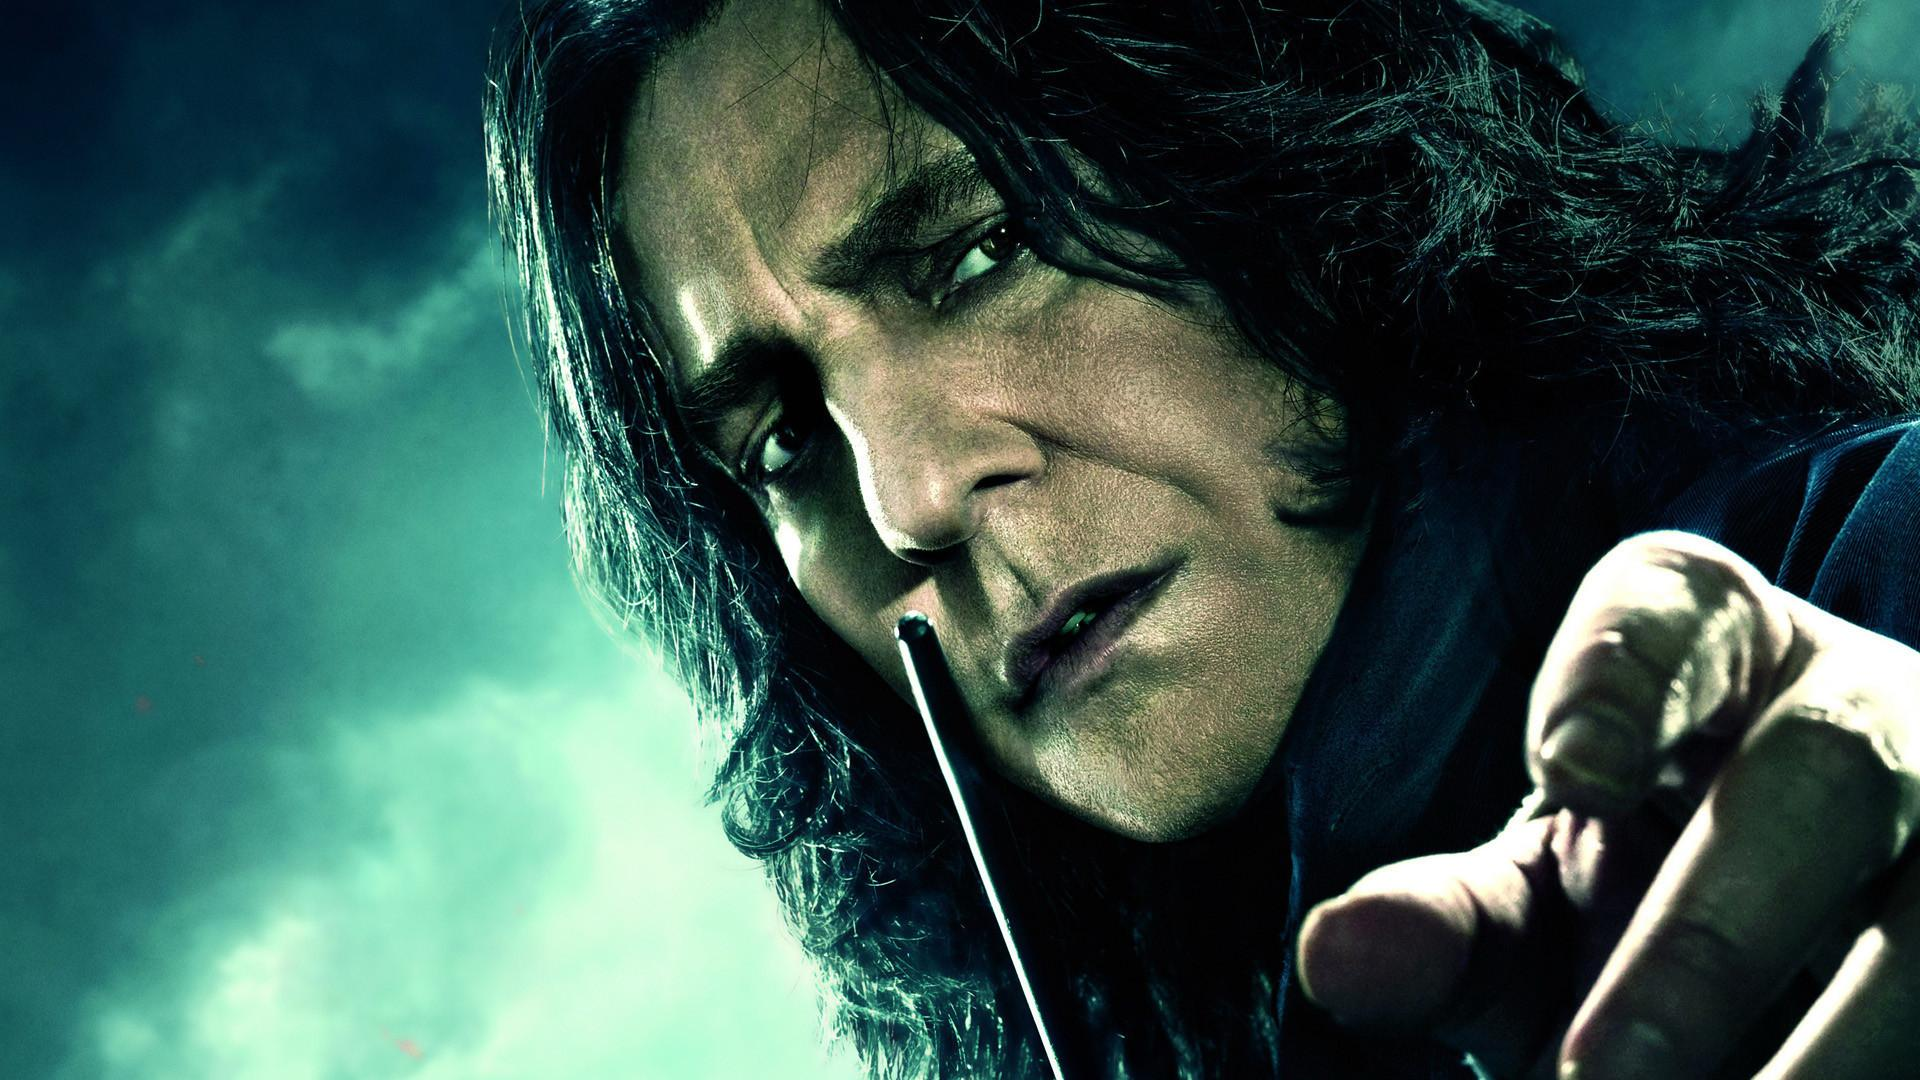 Harry potter and the deathly hallows part 1 wallpaper hd - Harry potter images download ...